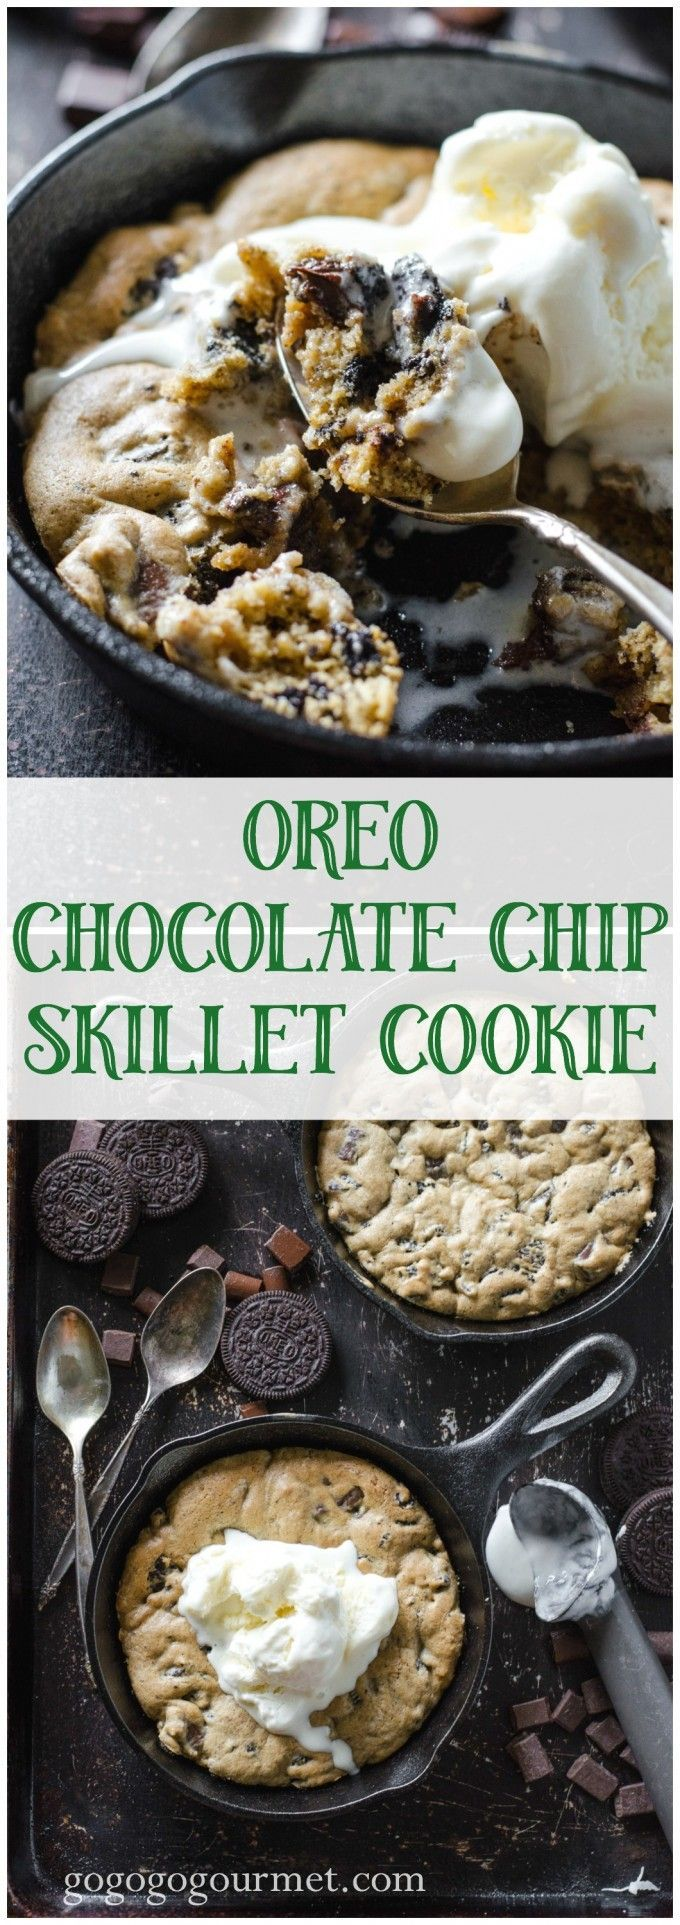 Unbelievable chocolate chip cookie, plus Oreo, warm from the oven and topped…